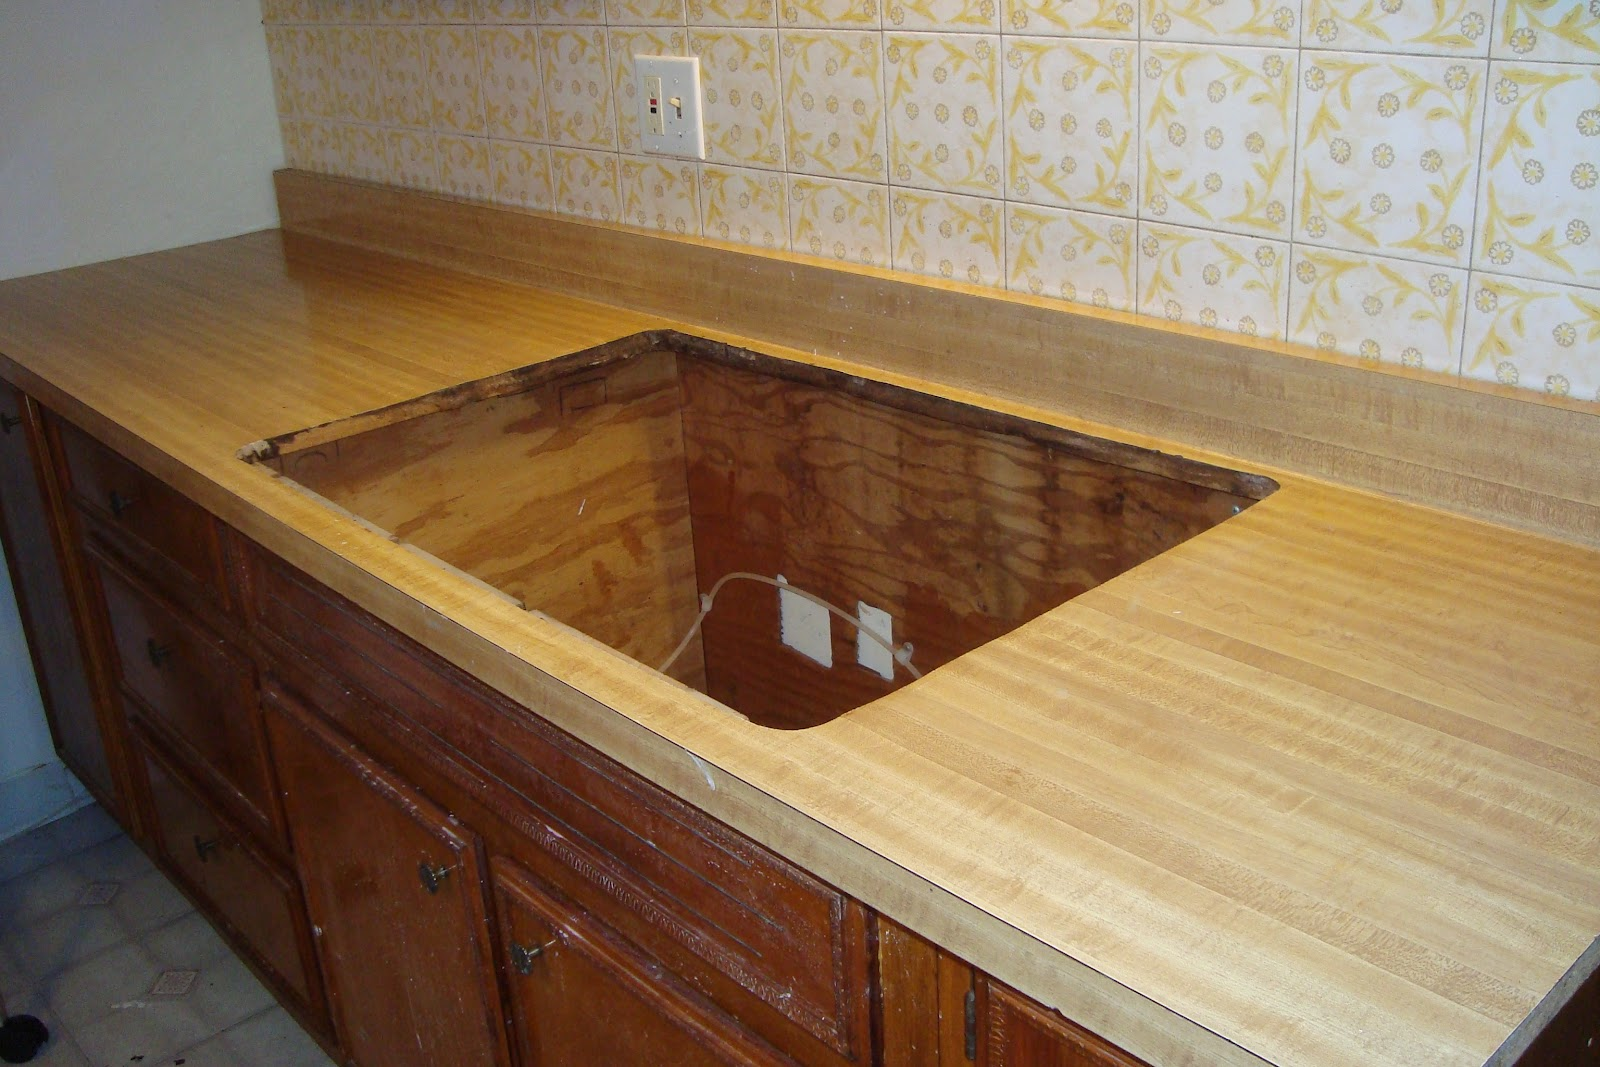 Countertop Painting Kits Trying To Go Green Giani Granite Countertop Paint Kit Review